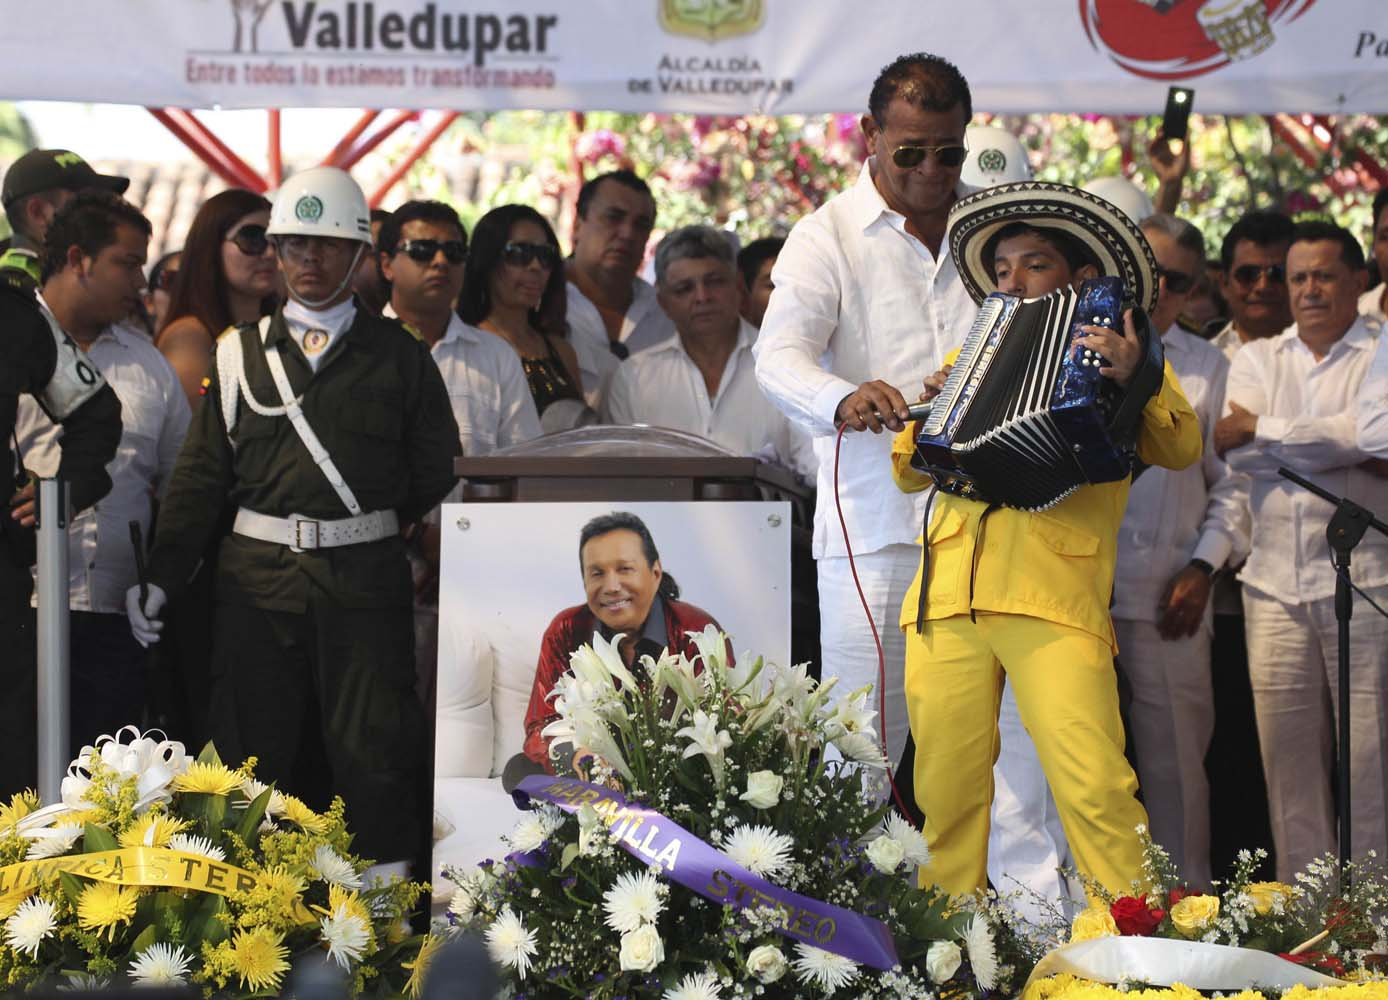 Child plays the accordion during a musical homage to musician Diomedes Diaz during a funeral ceremony at the main square of Valledupar